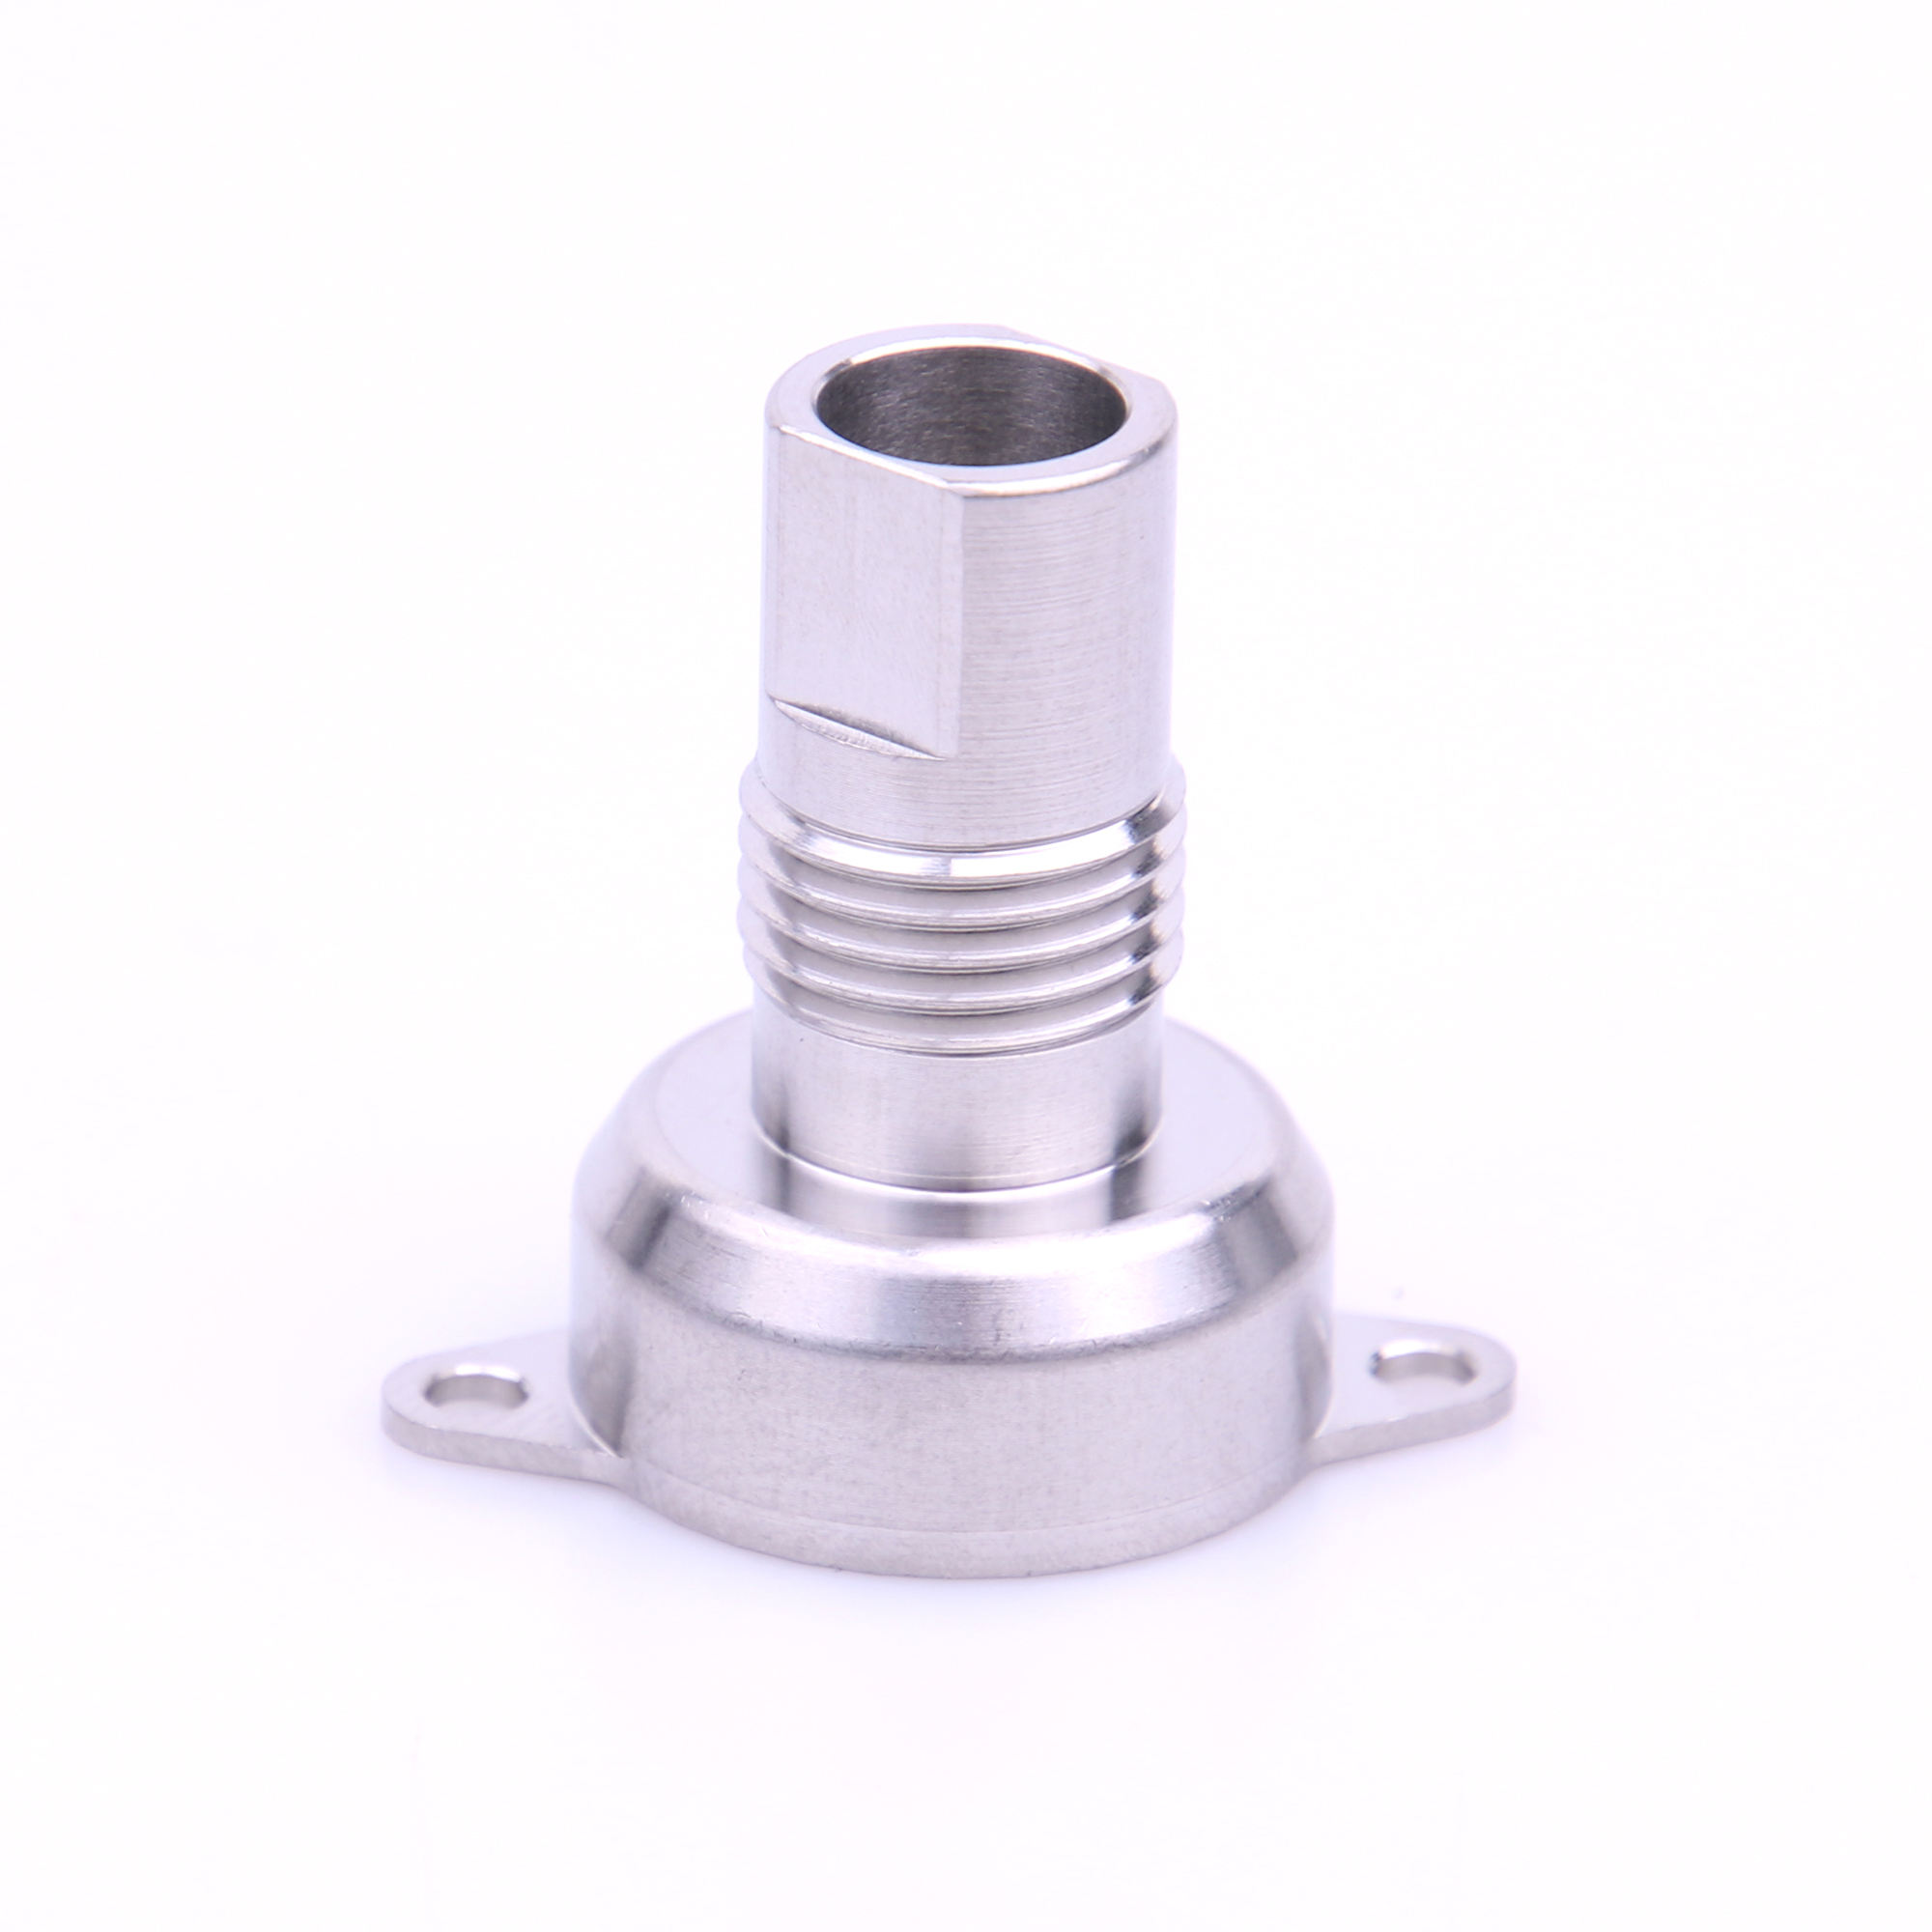 CNC Machining Service Customized High Precision Stainless Steel CNC Lathe Aluminum Parts CNC Turning Swiss Machining